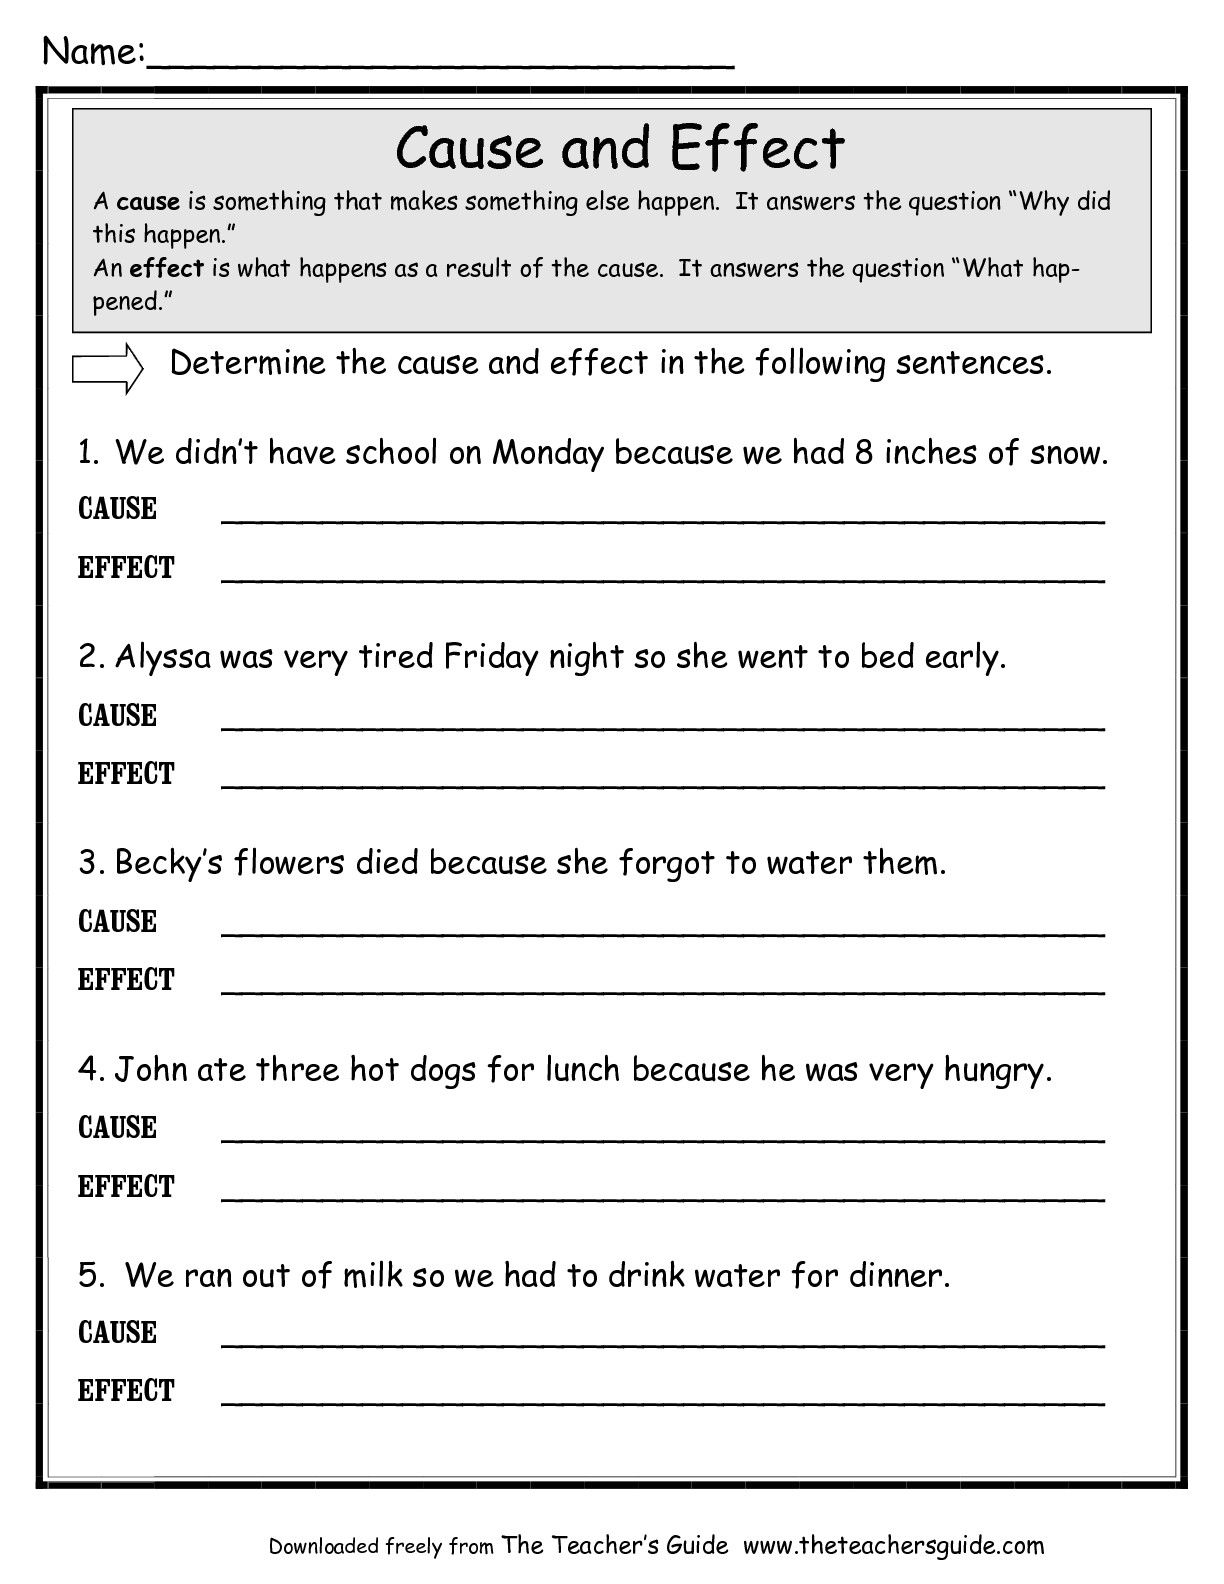 hight resolution of cause and effect worksheet - Google Search   Cause and effect worksheets